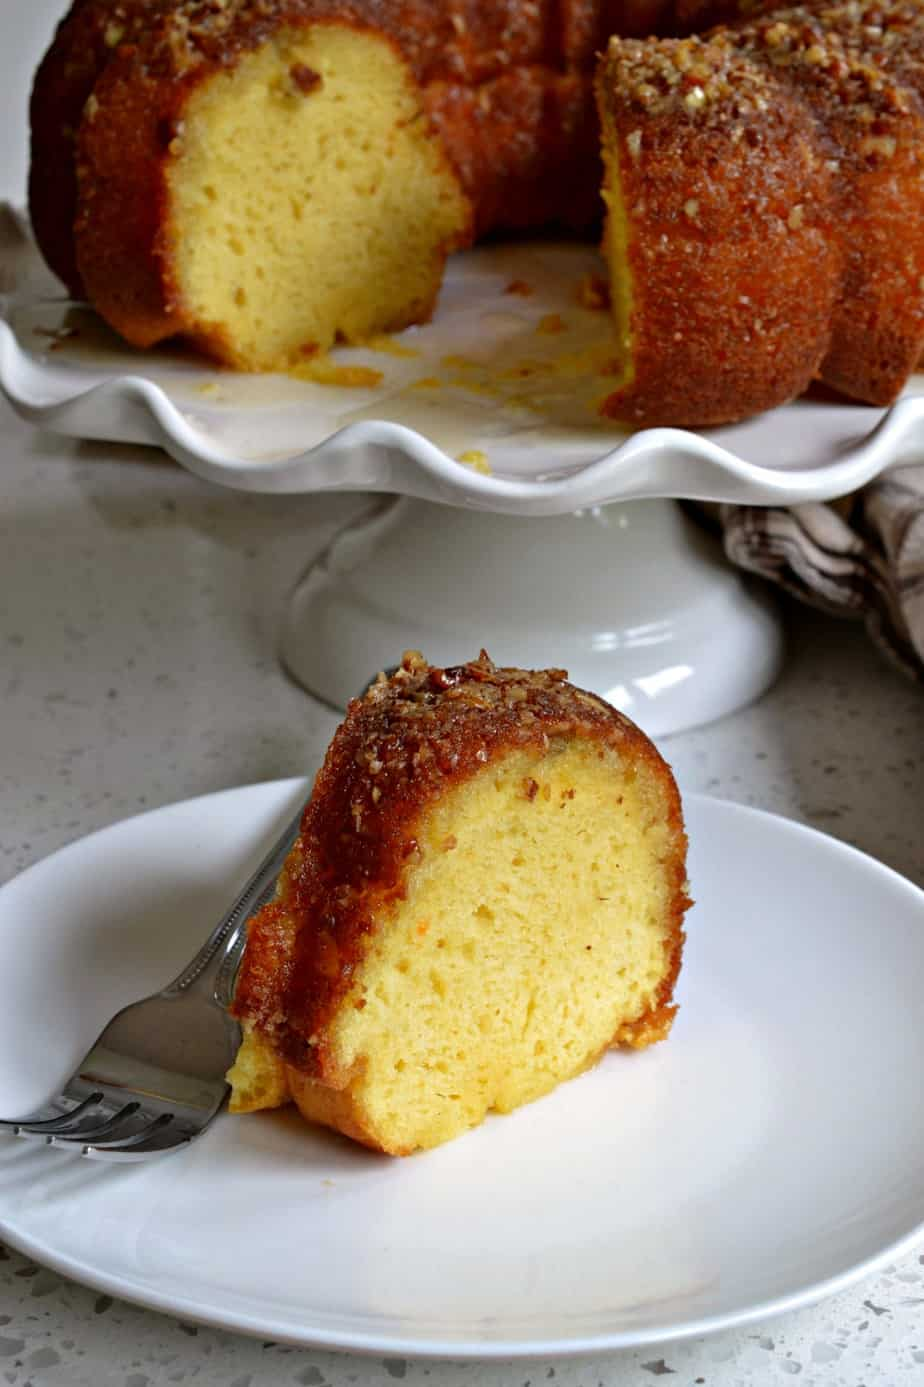 A moist easy Rum Cake with a butter rum glaze that comes together quickly using a yellow butter cake mix